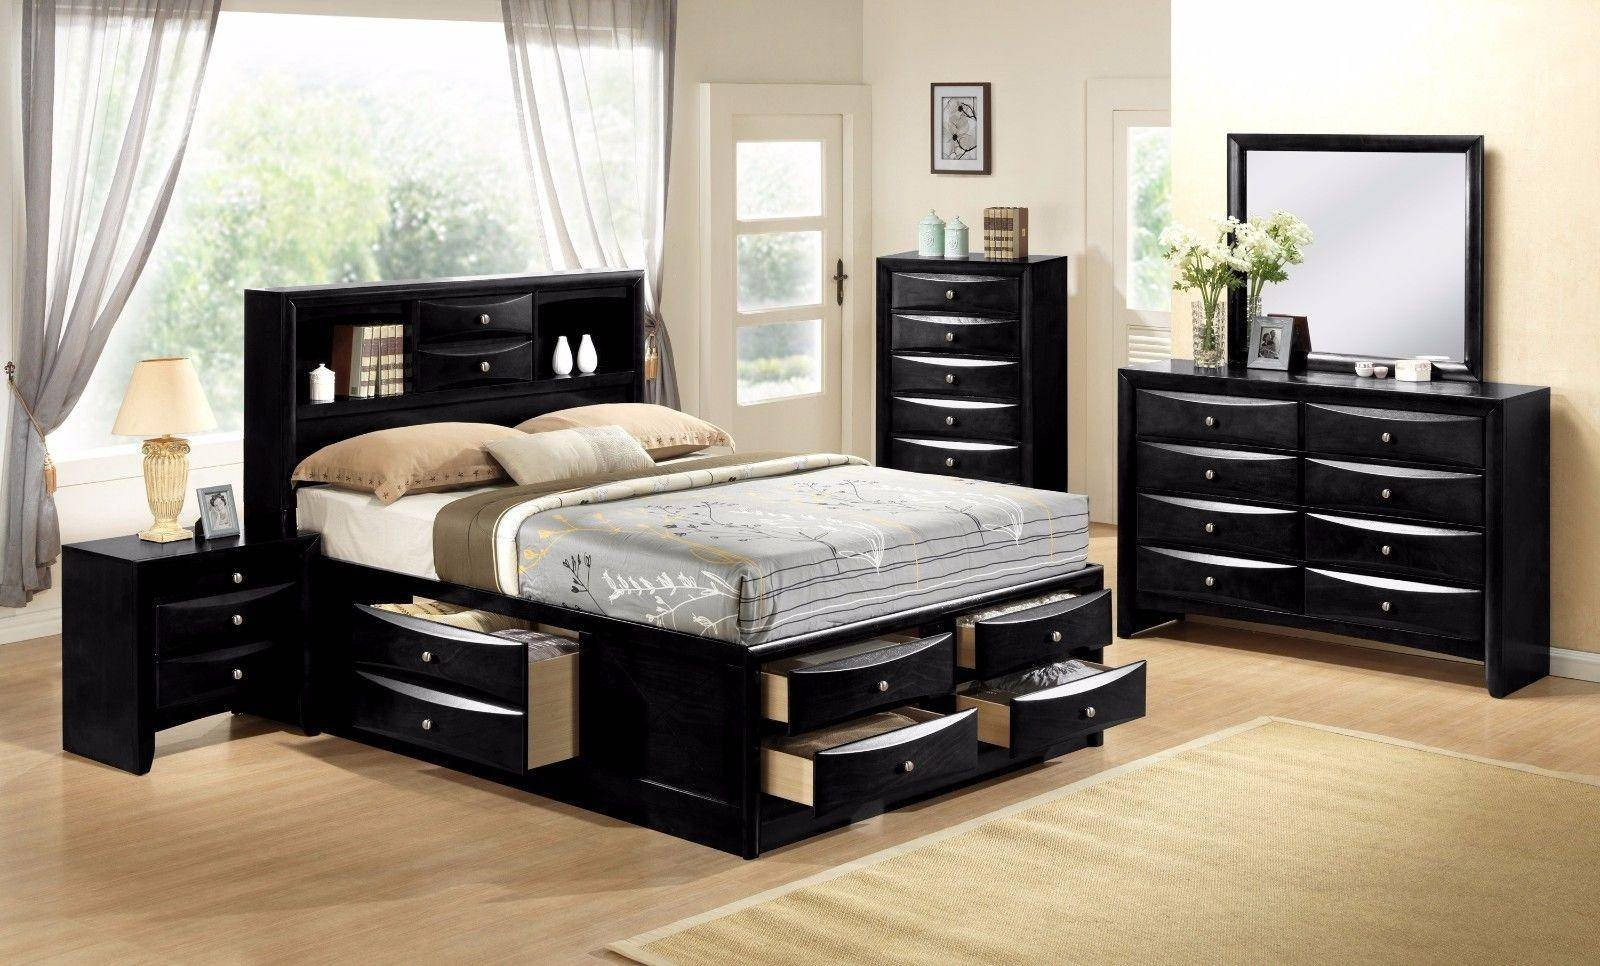 Dark Wood Bedroom Set New Crown Mark B4285 Emily Modern Black Finish Storage King Size